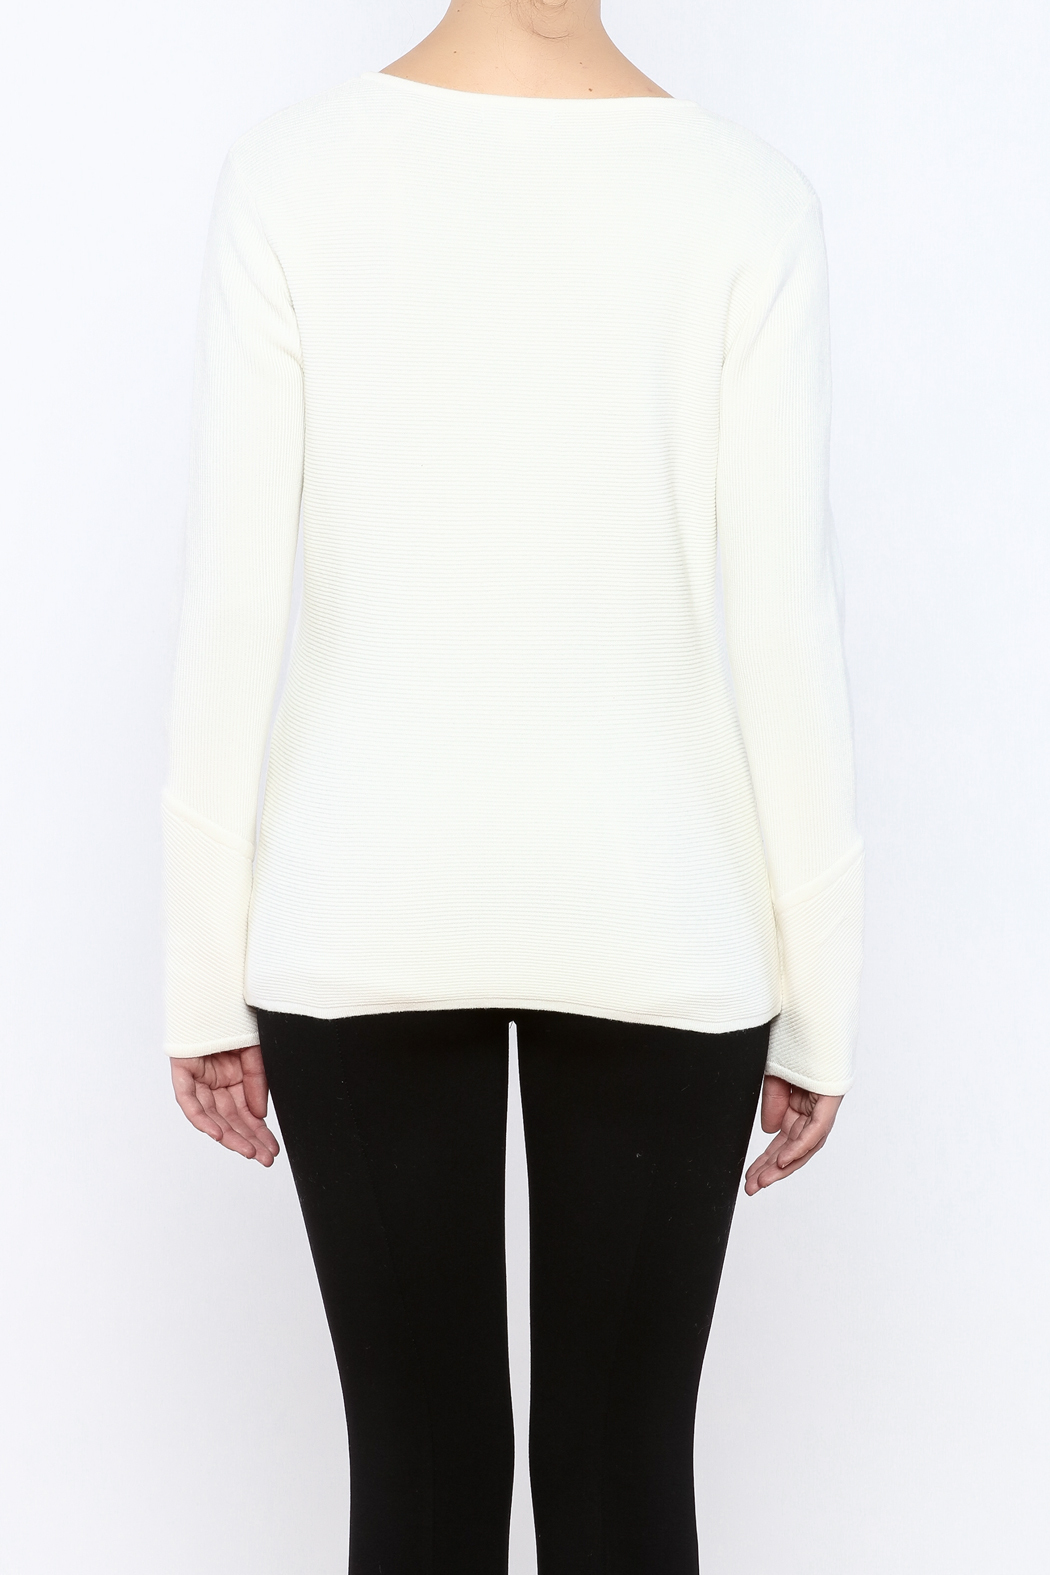 Katherine Barclay Winter White Sweater - Back Cropped Image